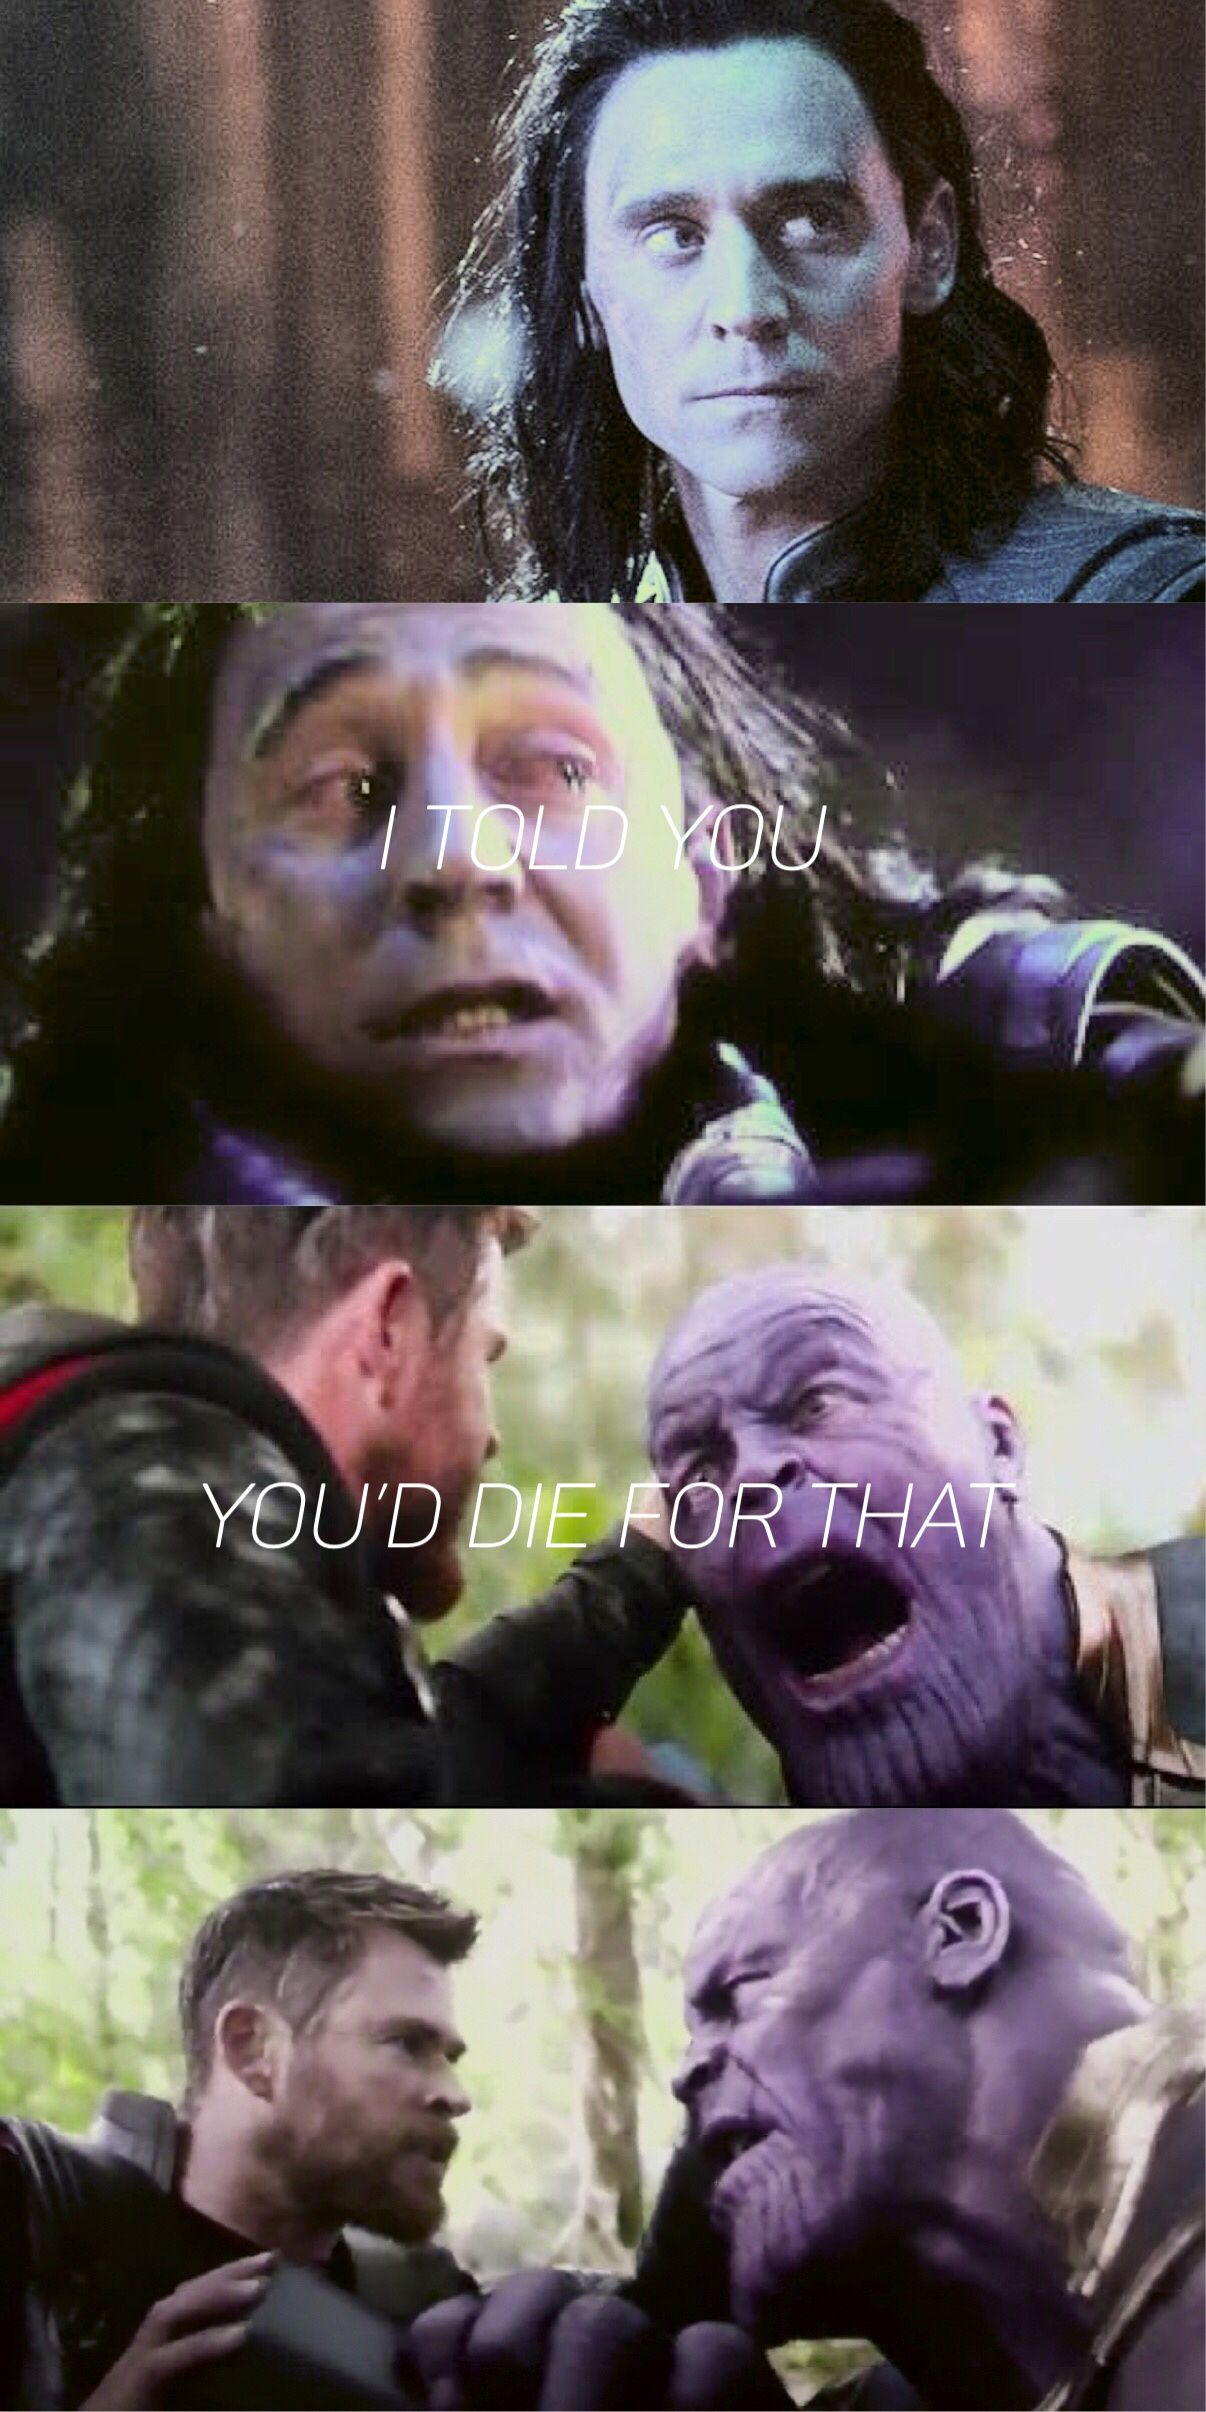 I Told You, Youd Die For That #Thor #Infinitywar